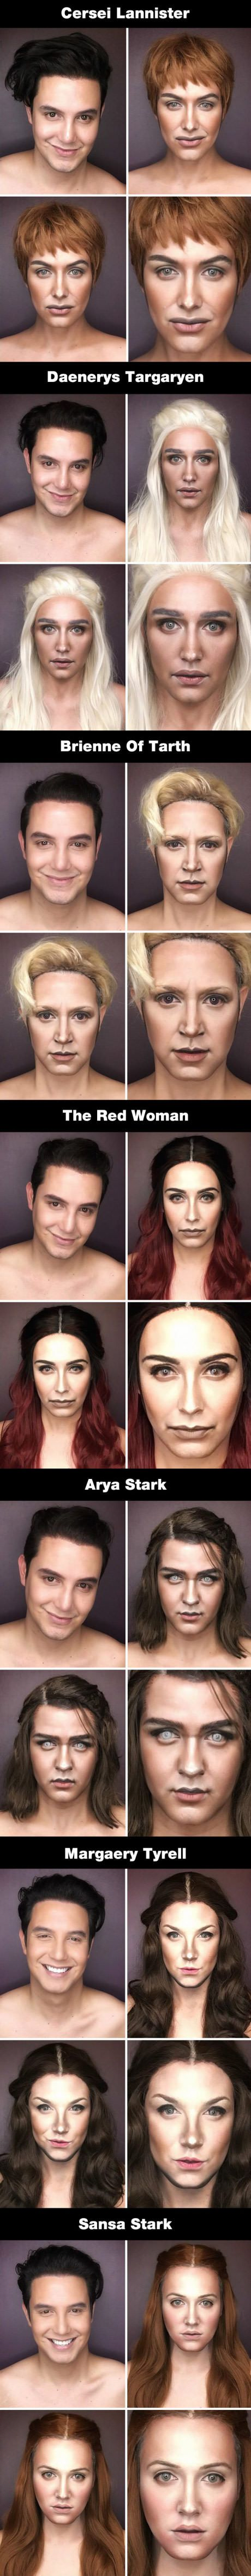 This Guy Transform Himself Into 7 Major Characters From Game of Thrones Using Only Makeup (By Paolo Ballesteros)